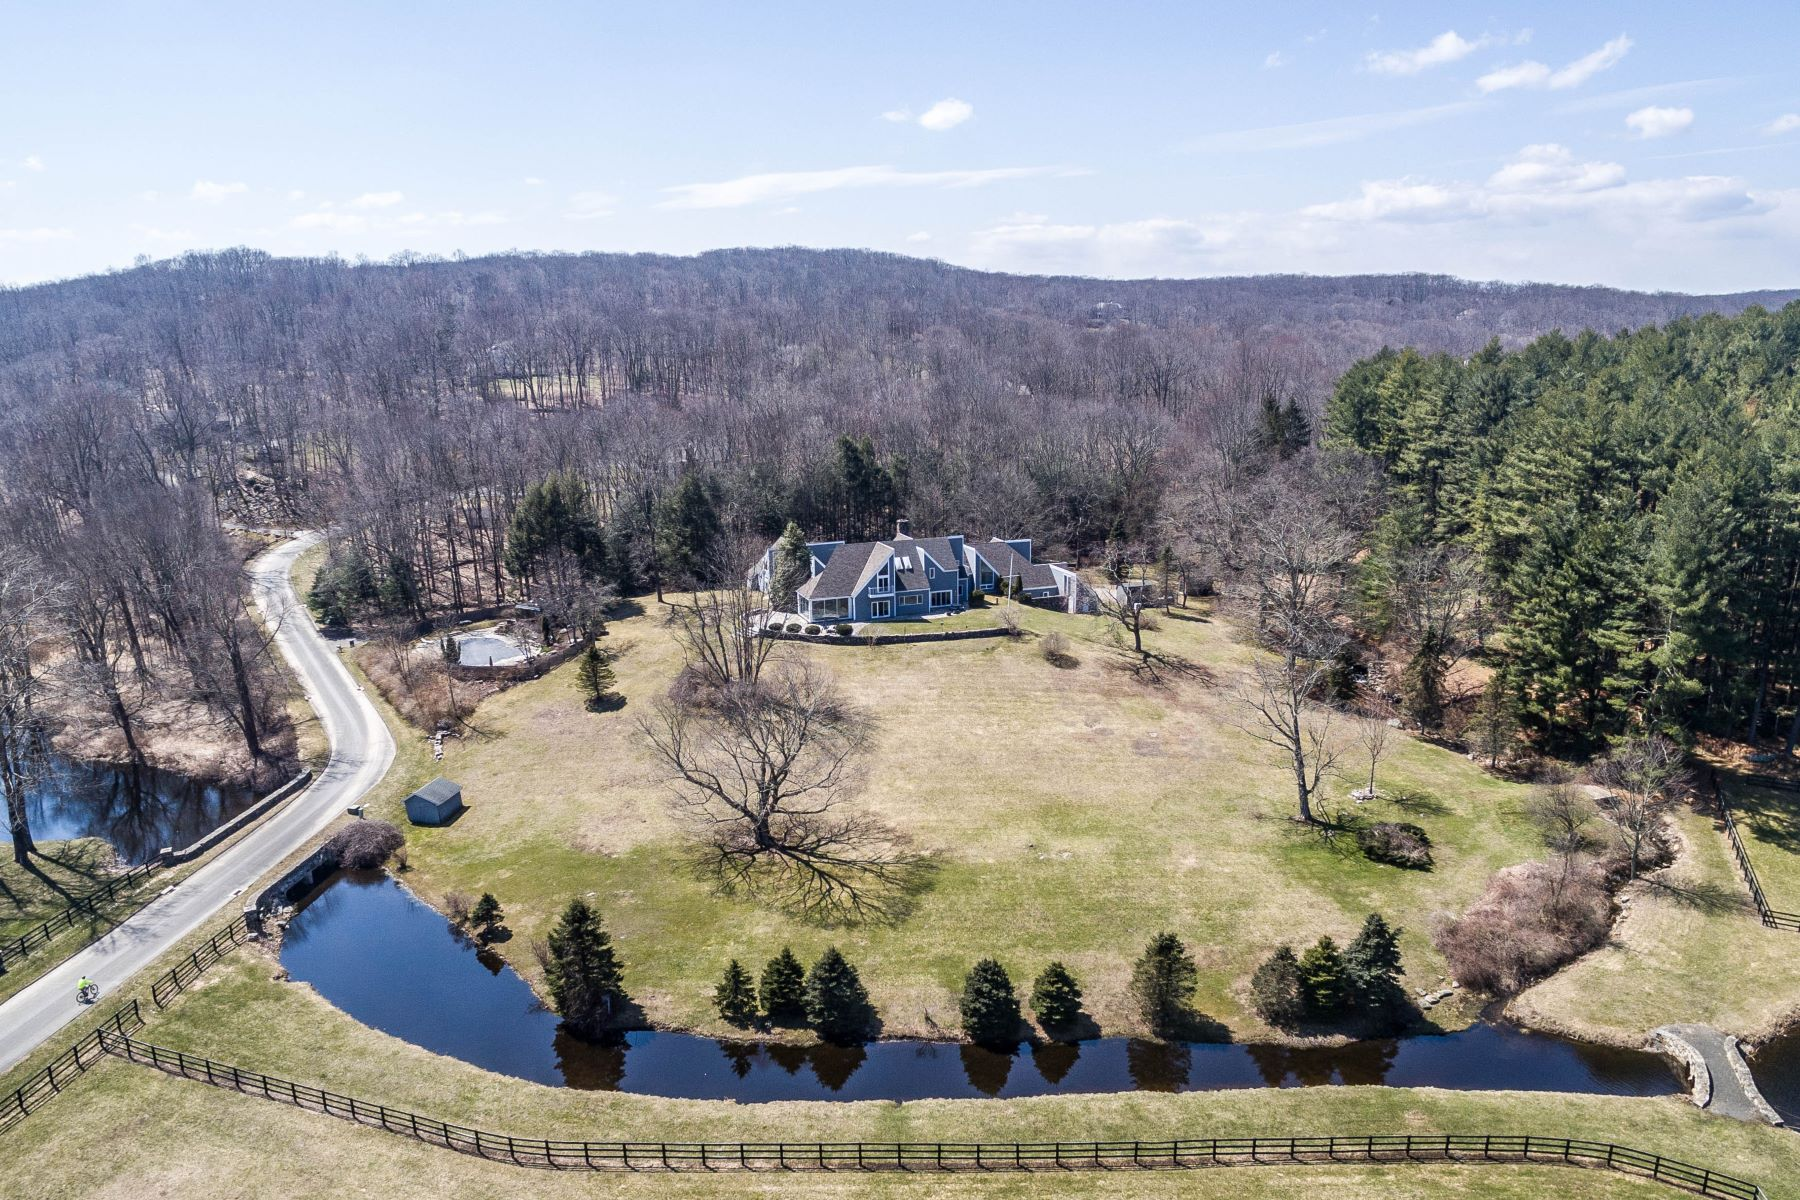 Casa Unifamiliar por un Venta en Views, Views & More Views! 8 Equestrian Ridge Newtown, Connecticut 06470 Estados Unidos